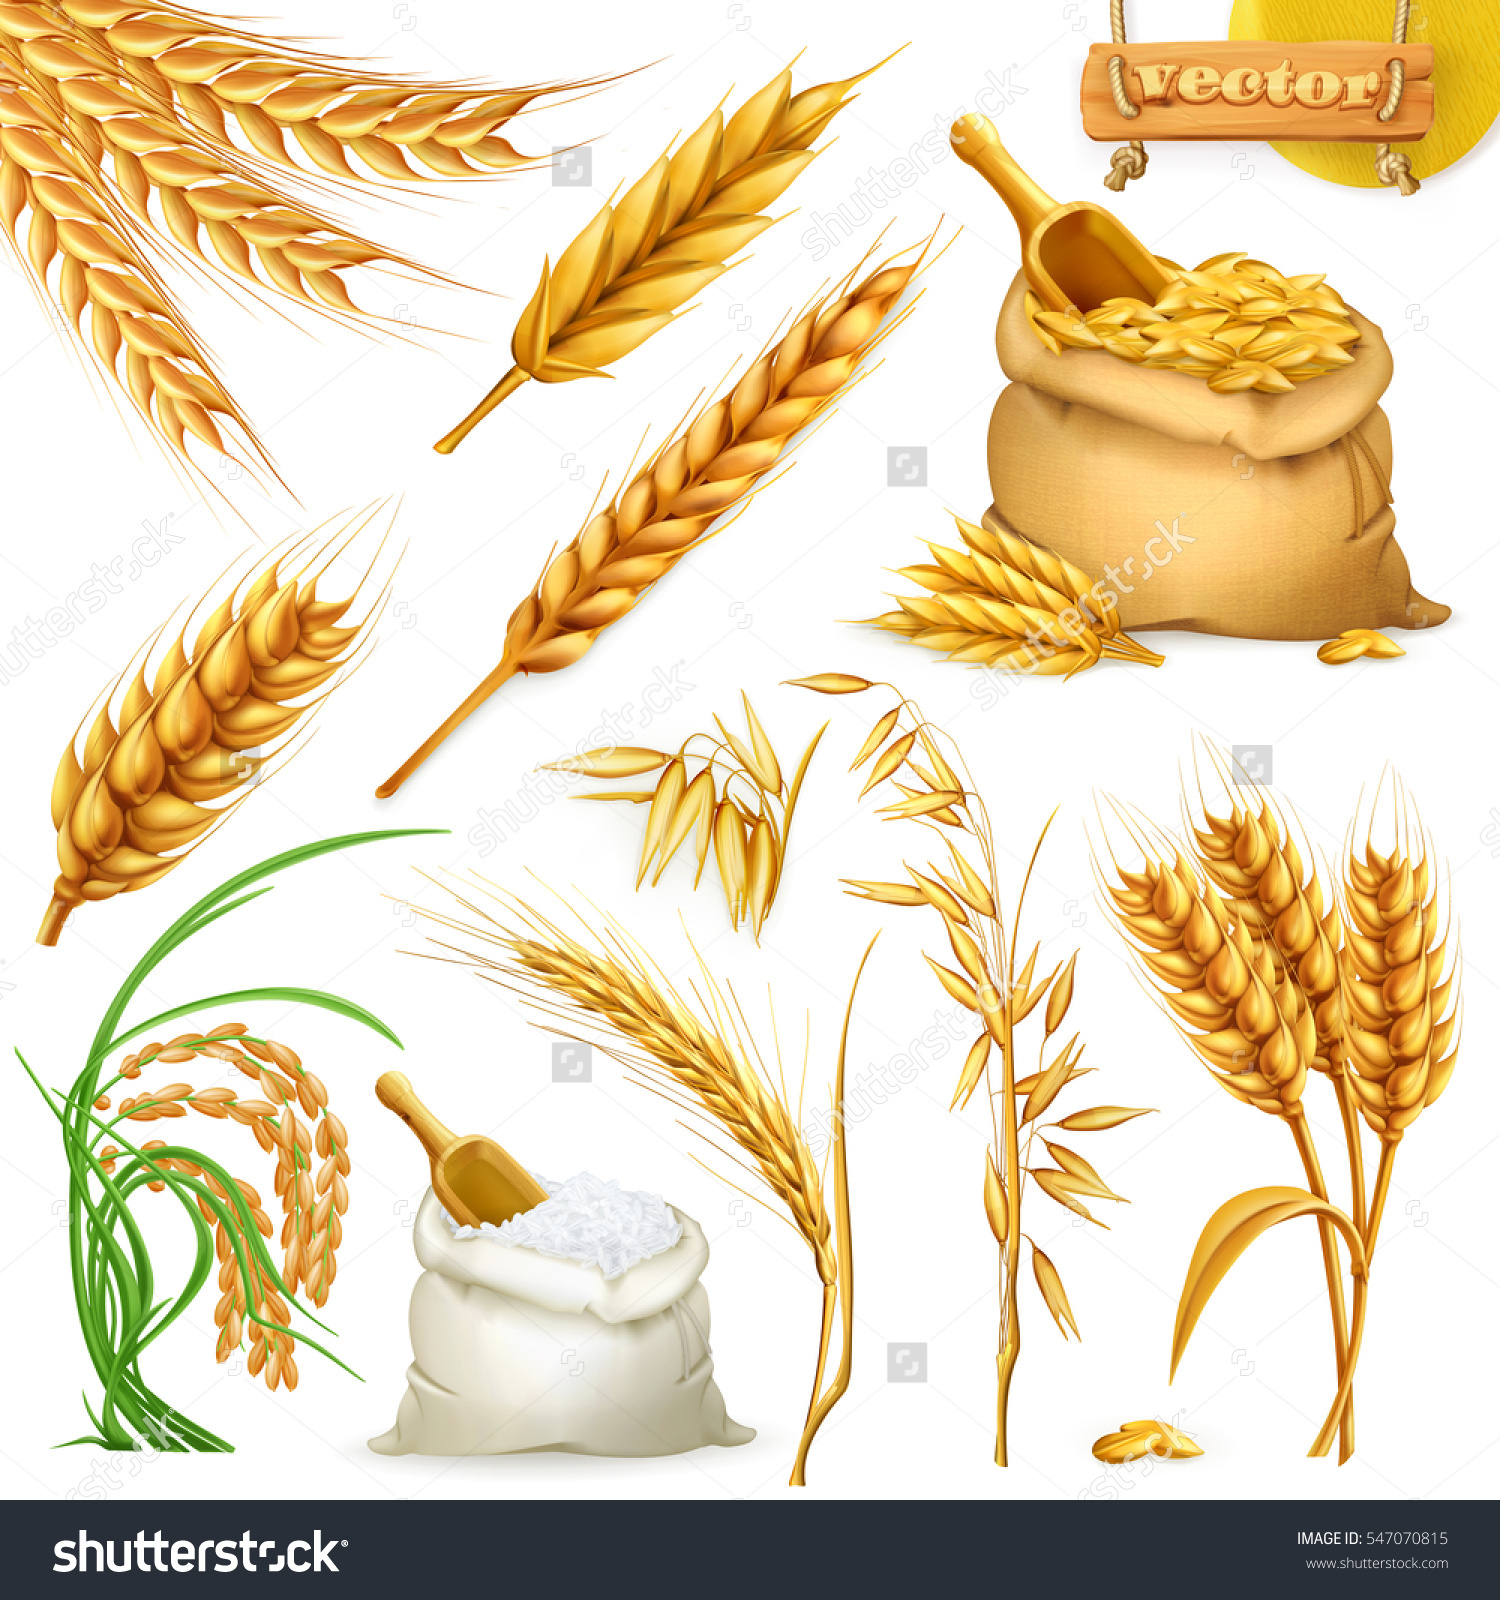 Wheat Barley Oat Rice Cereals 3d Stock.